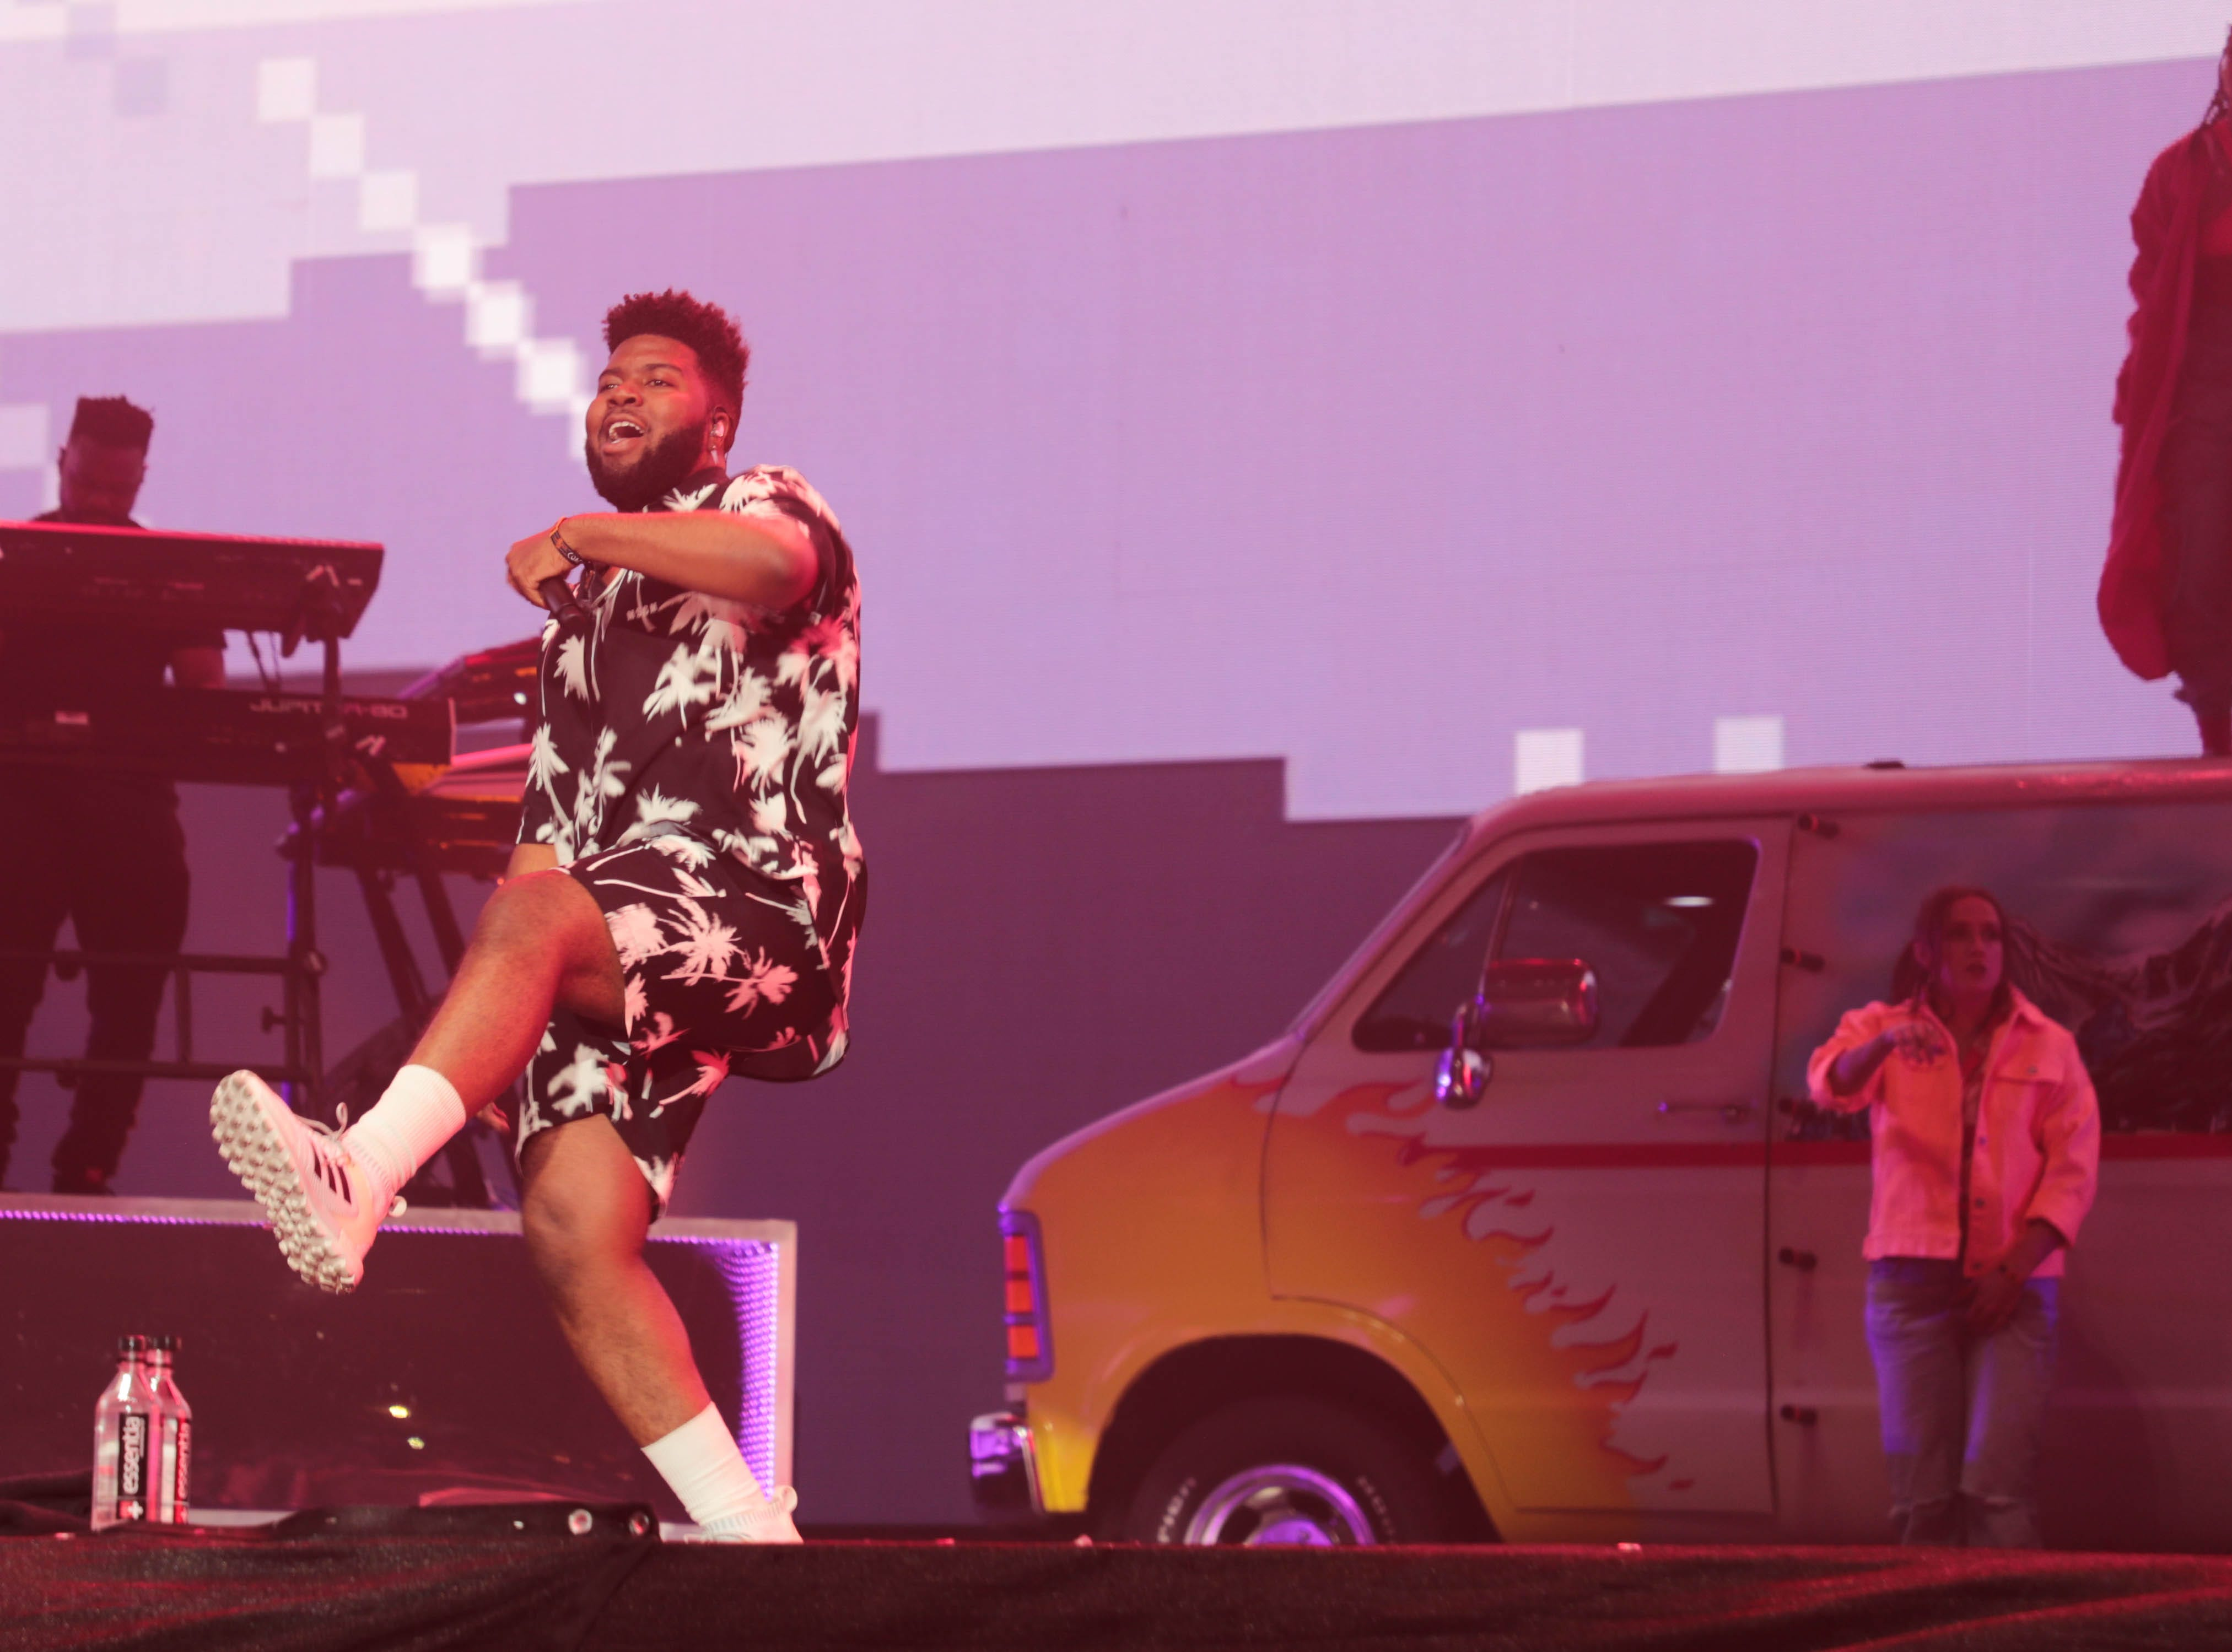 Khalid performs at the Coachella Valley Music and Arts Festival on Sunday, April 14, 2019 in Indio, Calif.